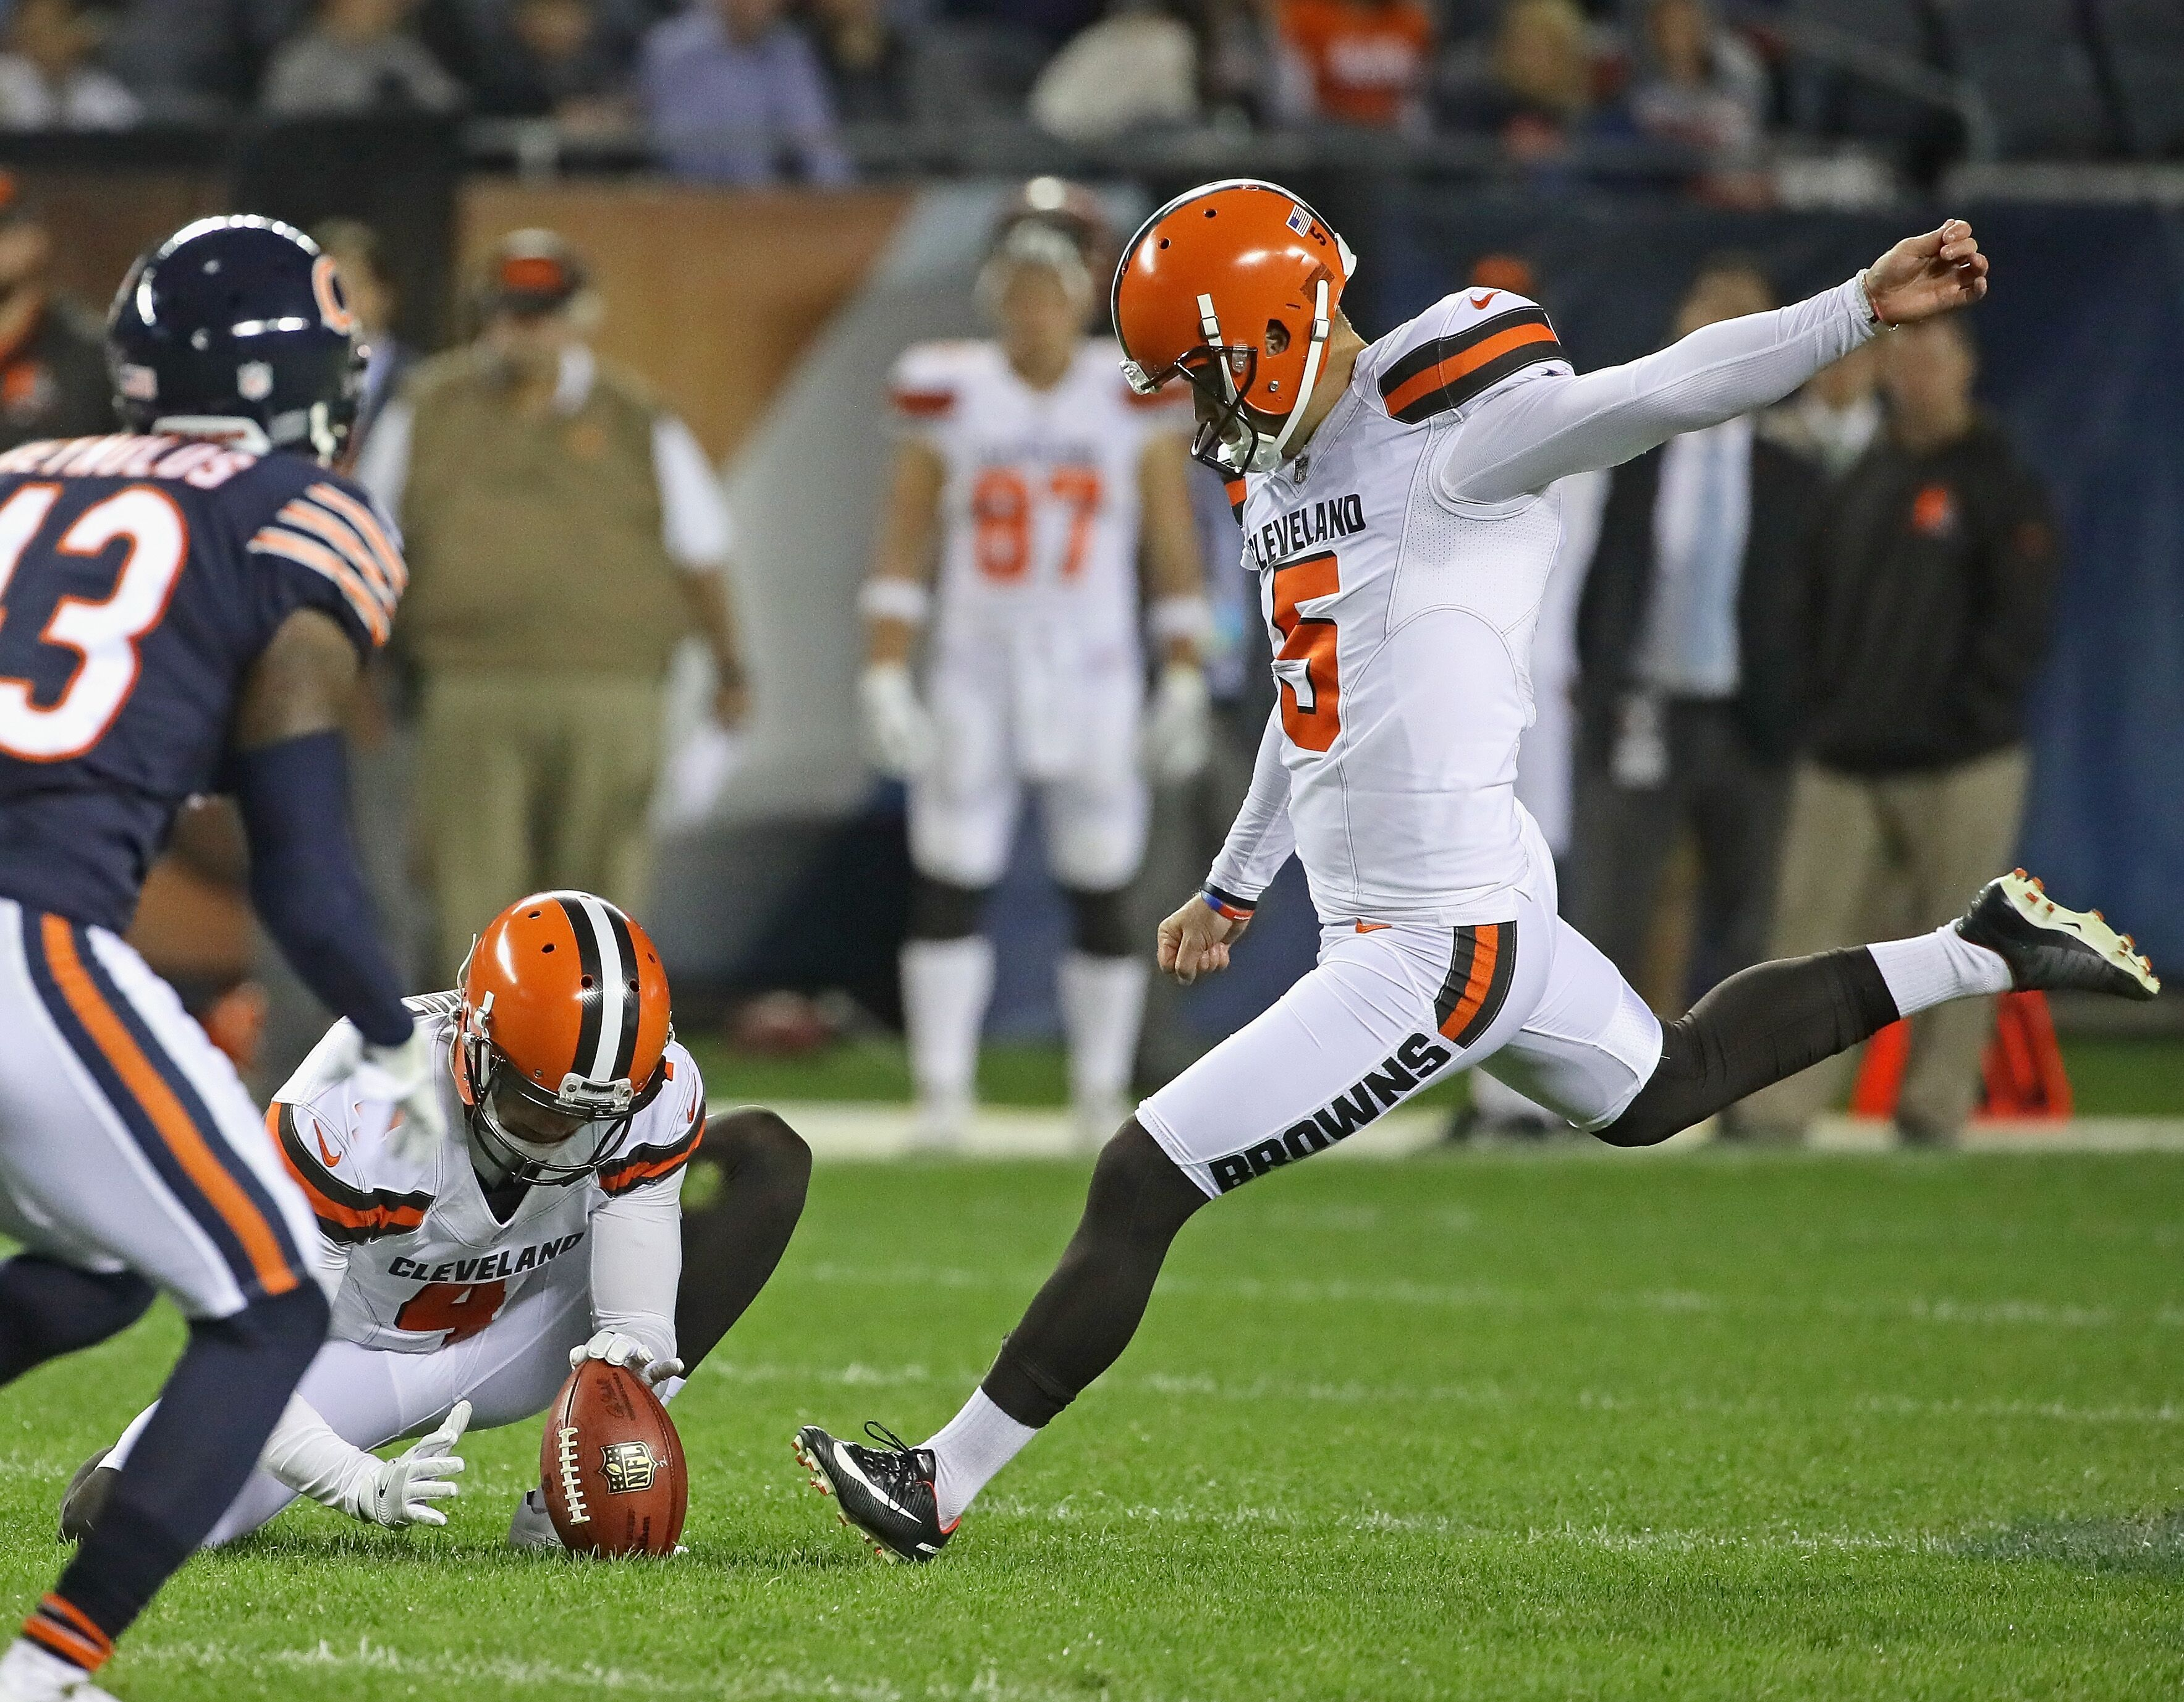 Cleveland Browns did not try out kickers as Zane Gonzalez ...